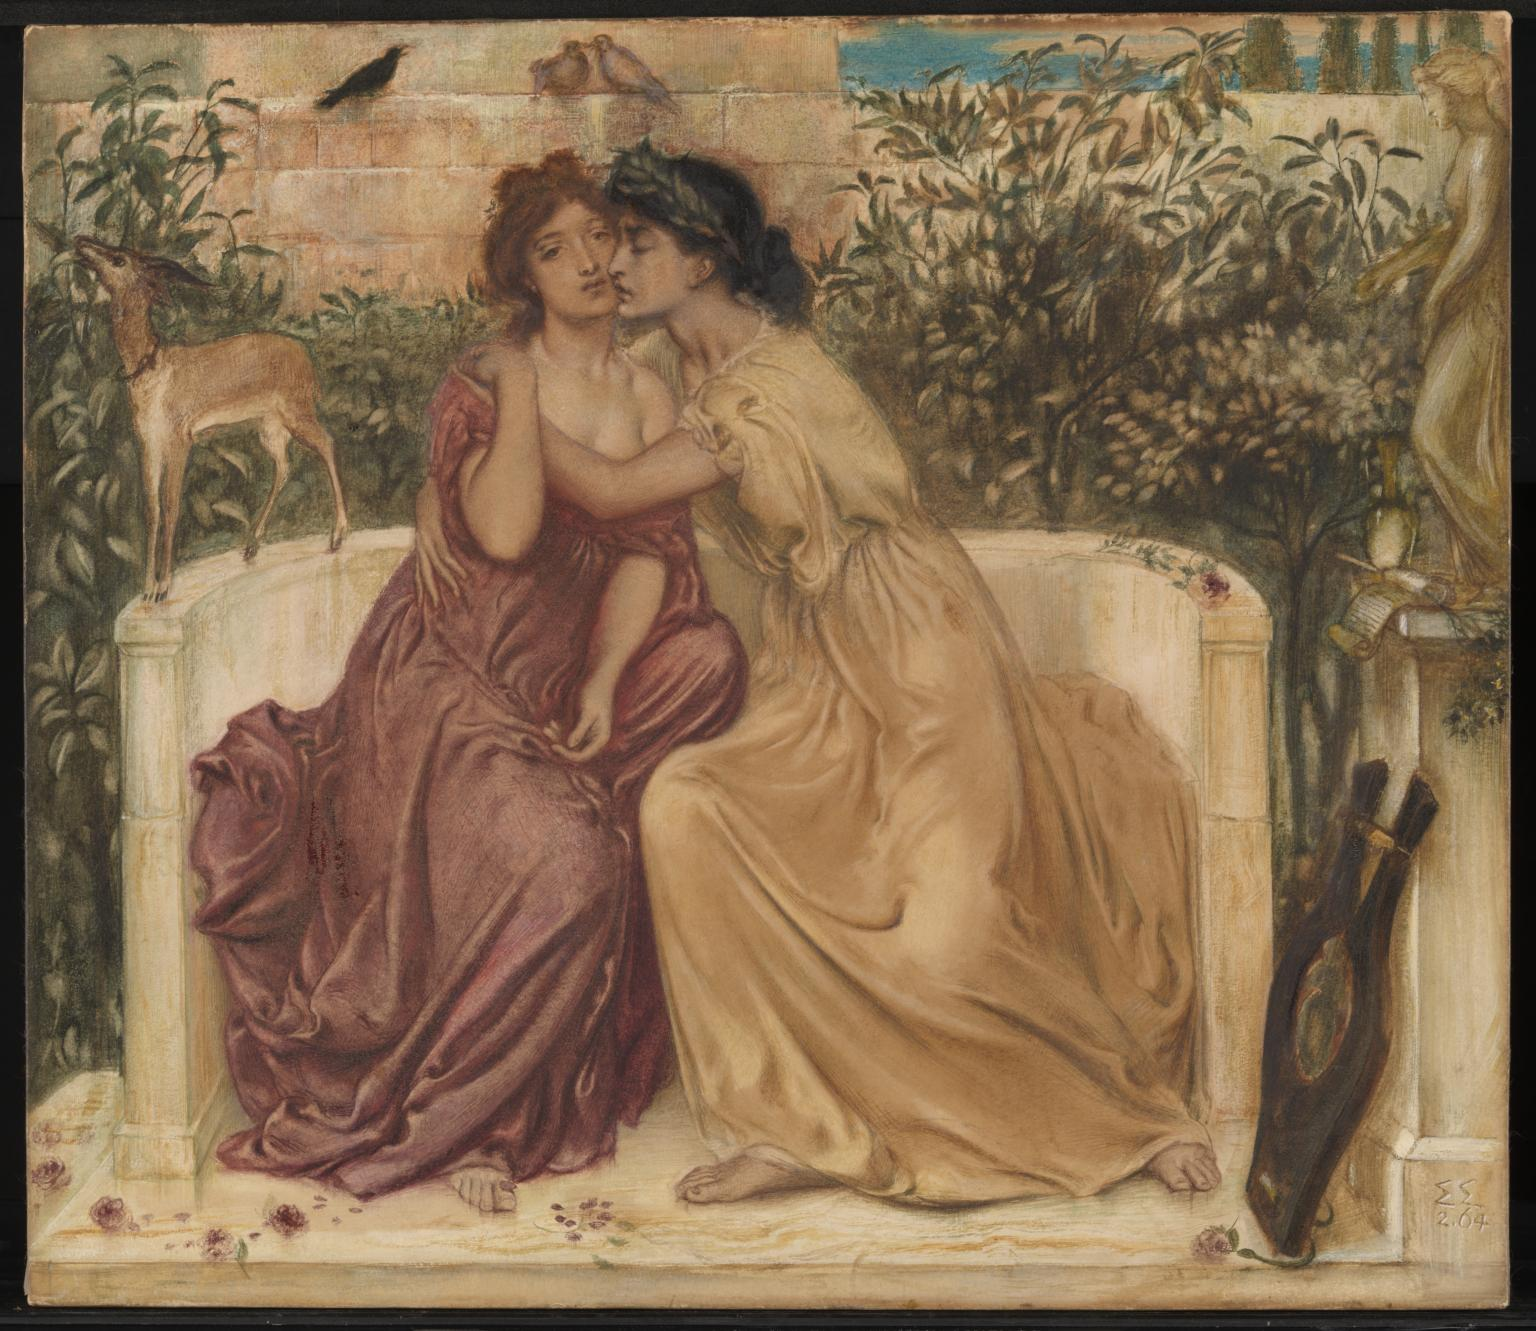 [ Sappho and Erinna in a Garden at Mytilene  (1864) by  Simeon Solomon ] This painting depicts Sappho embracing her fellow poet Erinna in a garden at Mytilene on the island of Lesbos